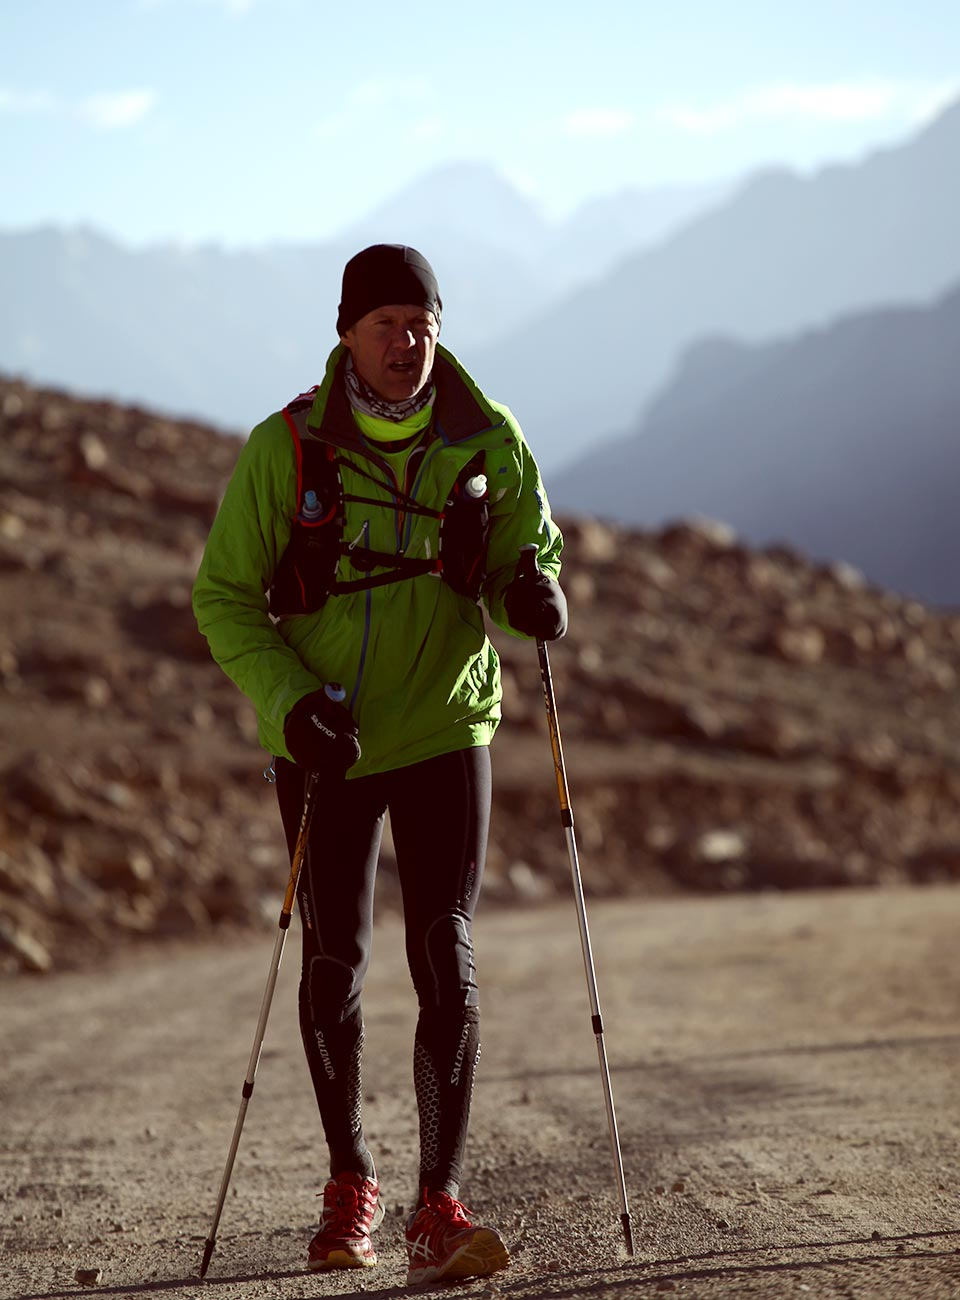 La Ultra - The High Takes Place 3,200m Above Sea Level in the Indian Himalayas